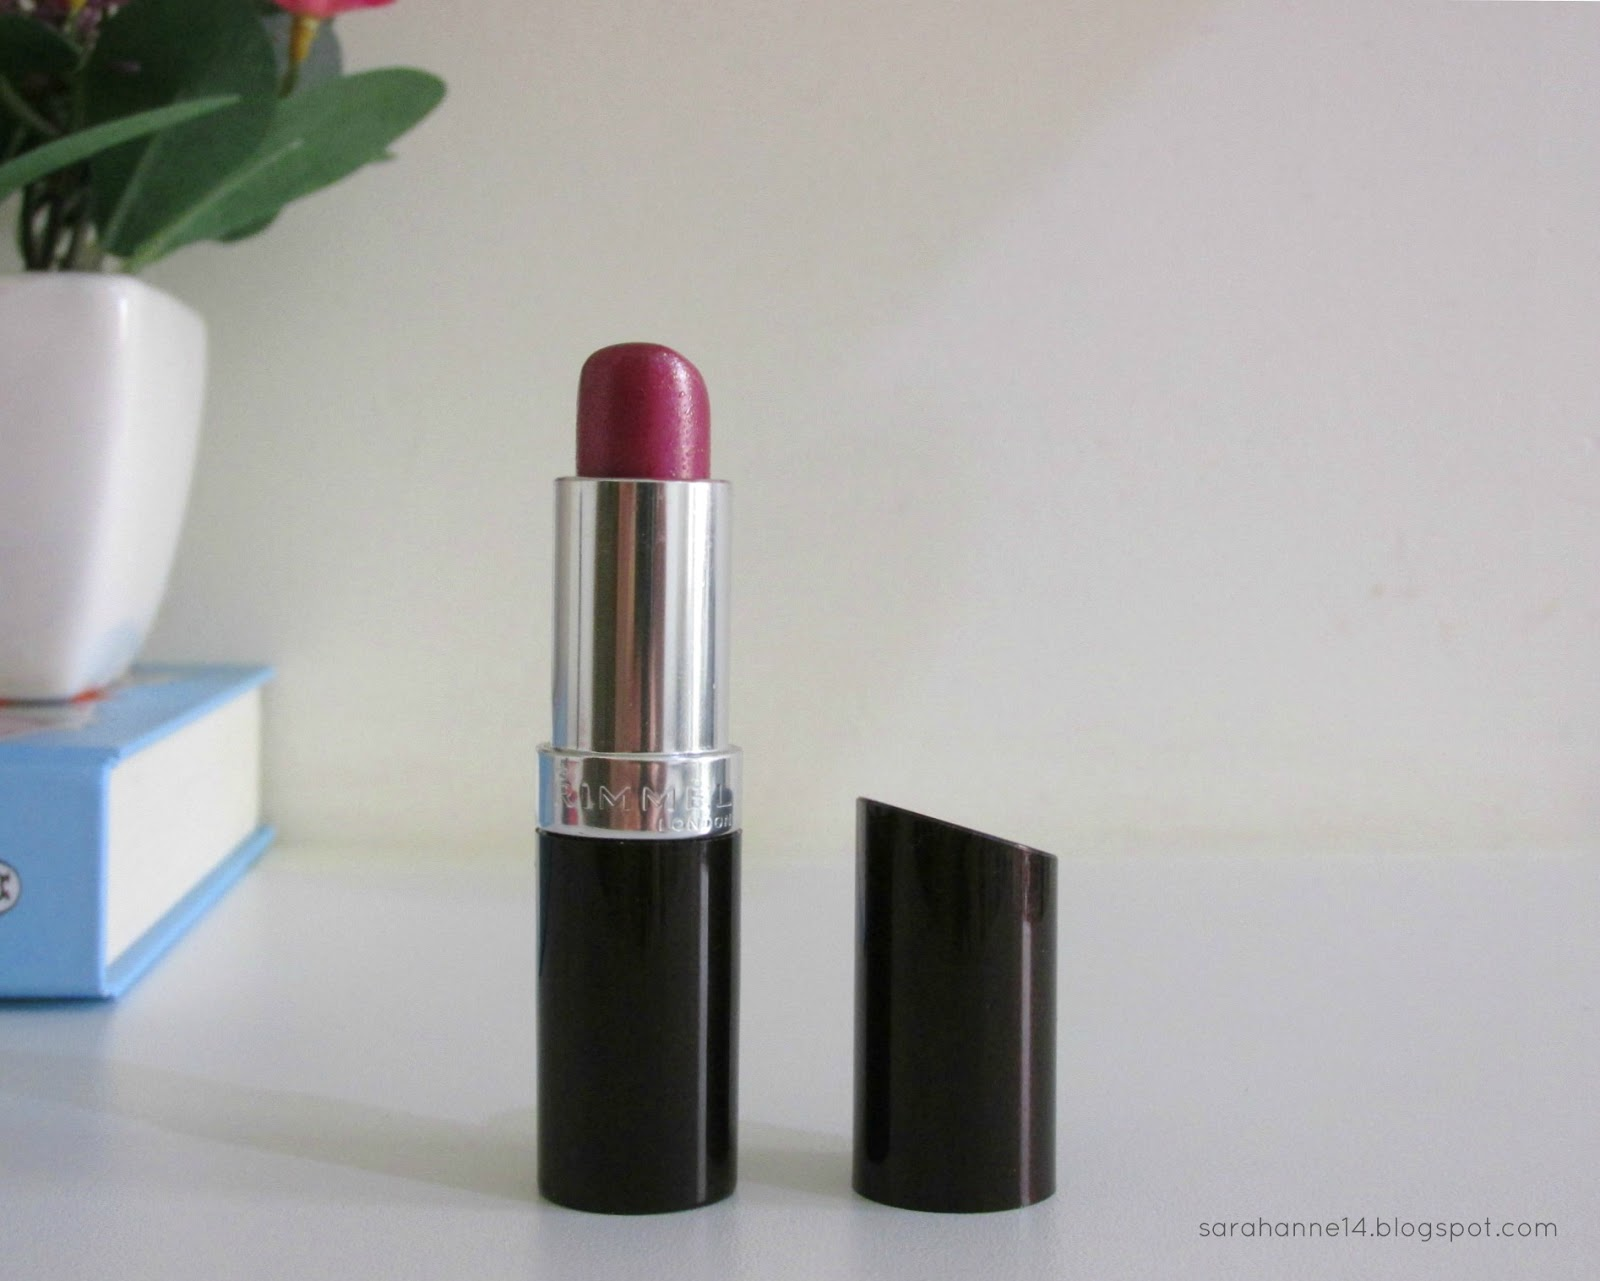 top 5 lip products, lipstick, lipgloss, Sarahanne14, top 5 lipsticks, rimmel lipstick